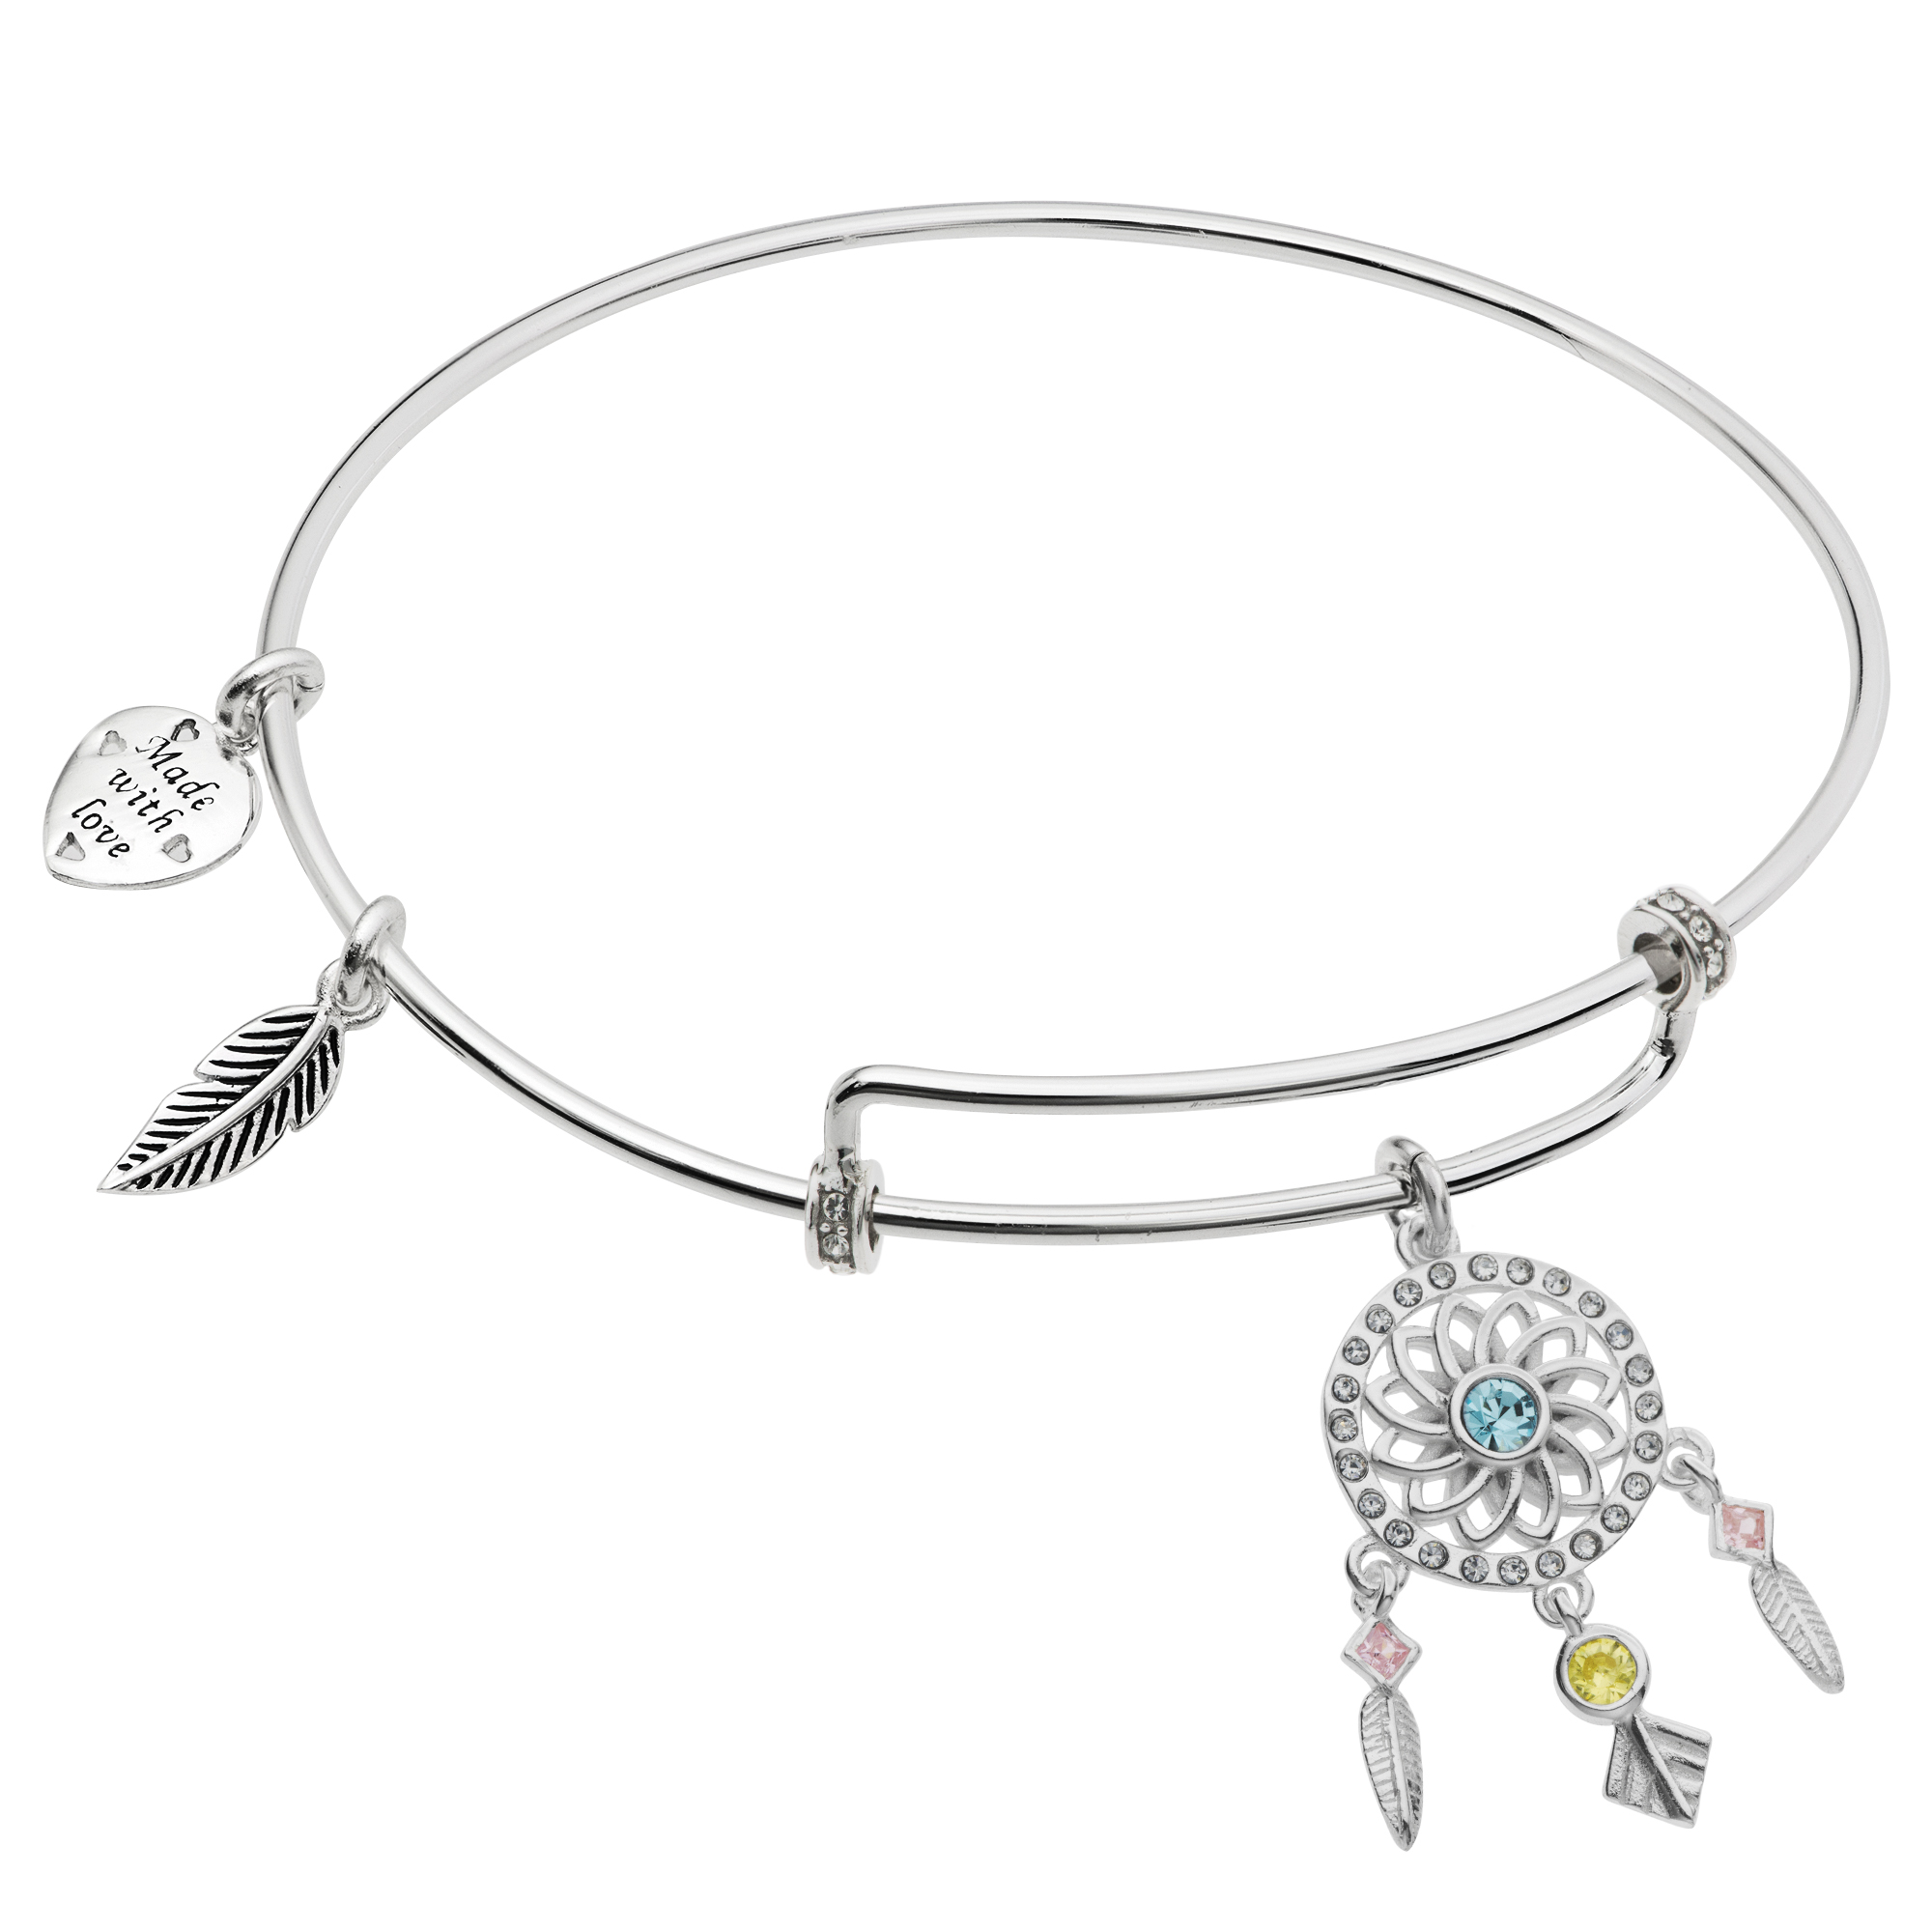 Rhodium on 925 Sterling Silver Dream Catcher CZ Dangle Charm Adjustable Wire Bangle Bracelet